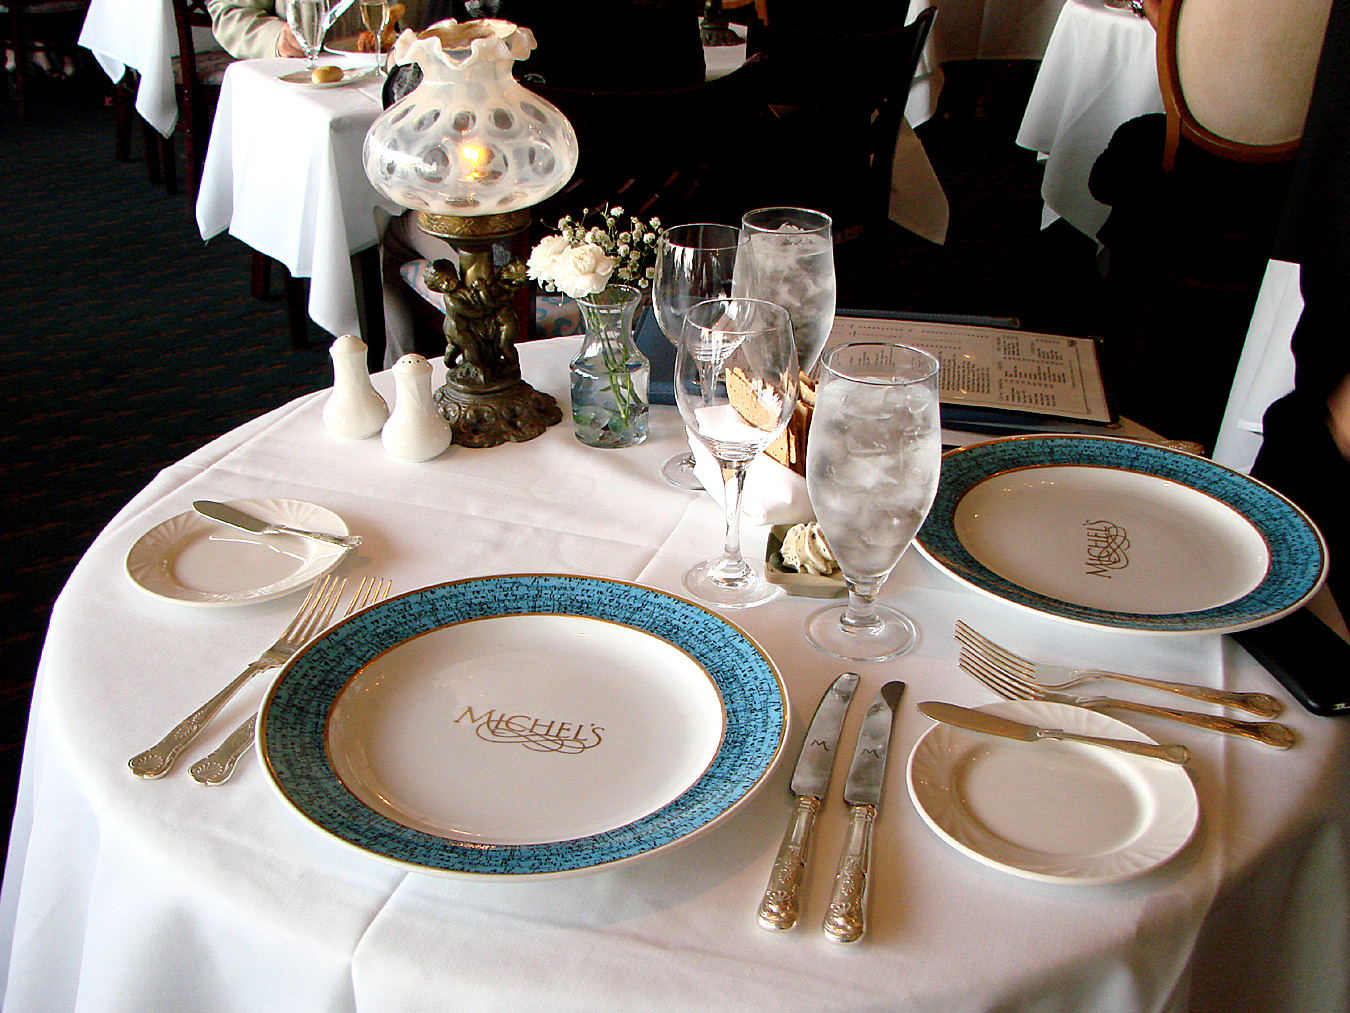 Restaurant table setting ideas - Restaurant Table Setting Ideas 13